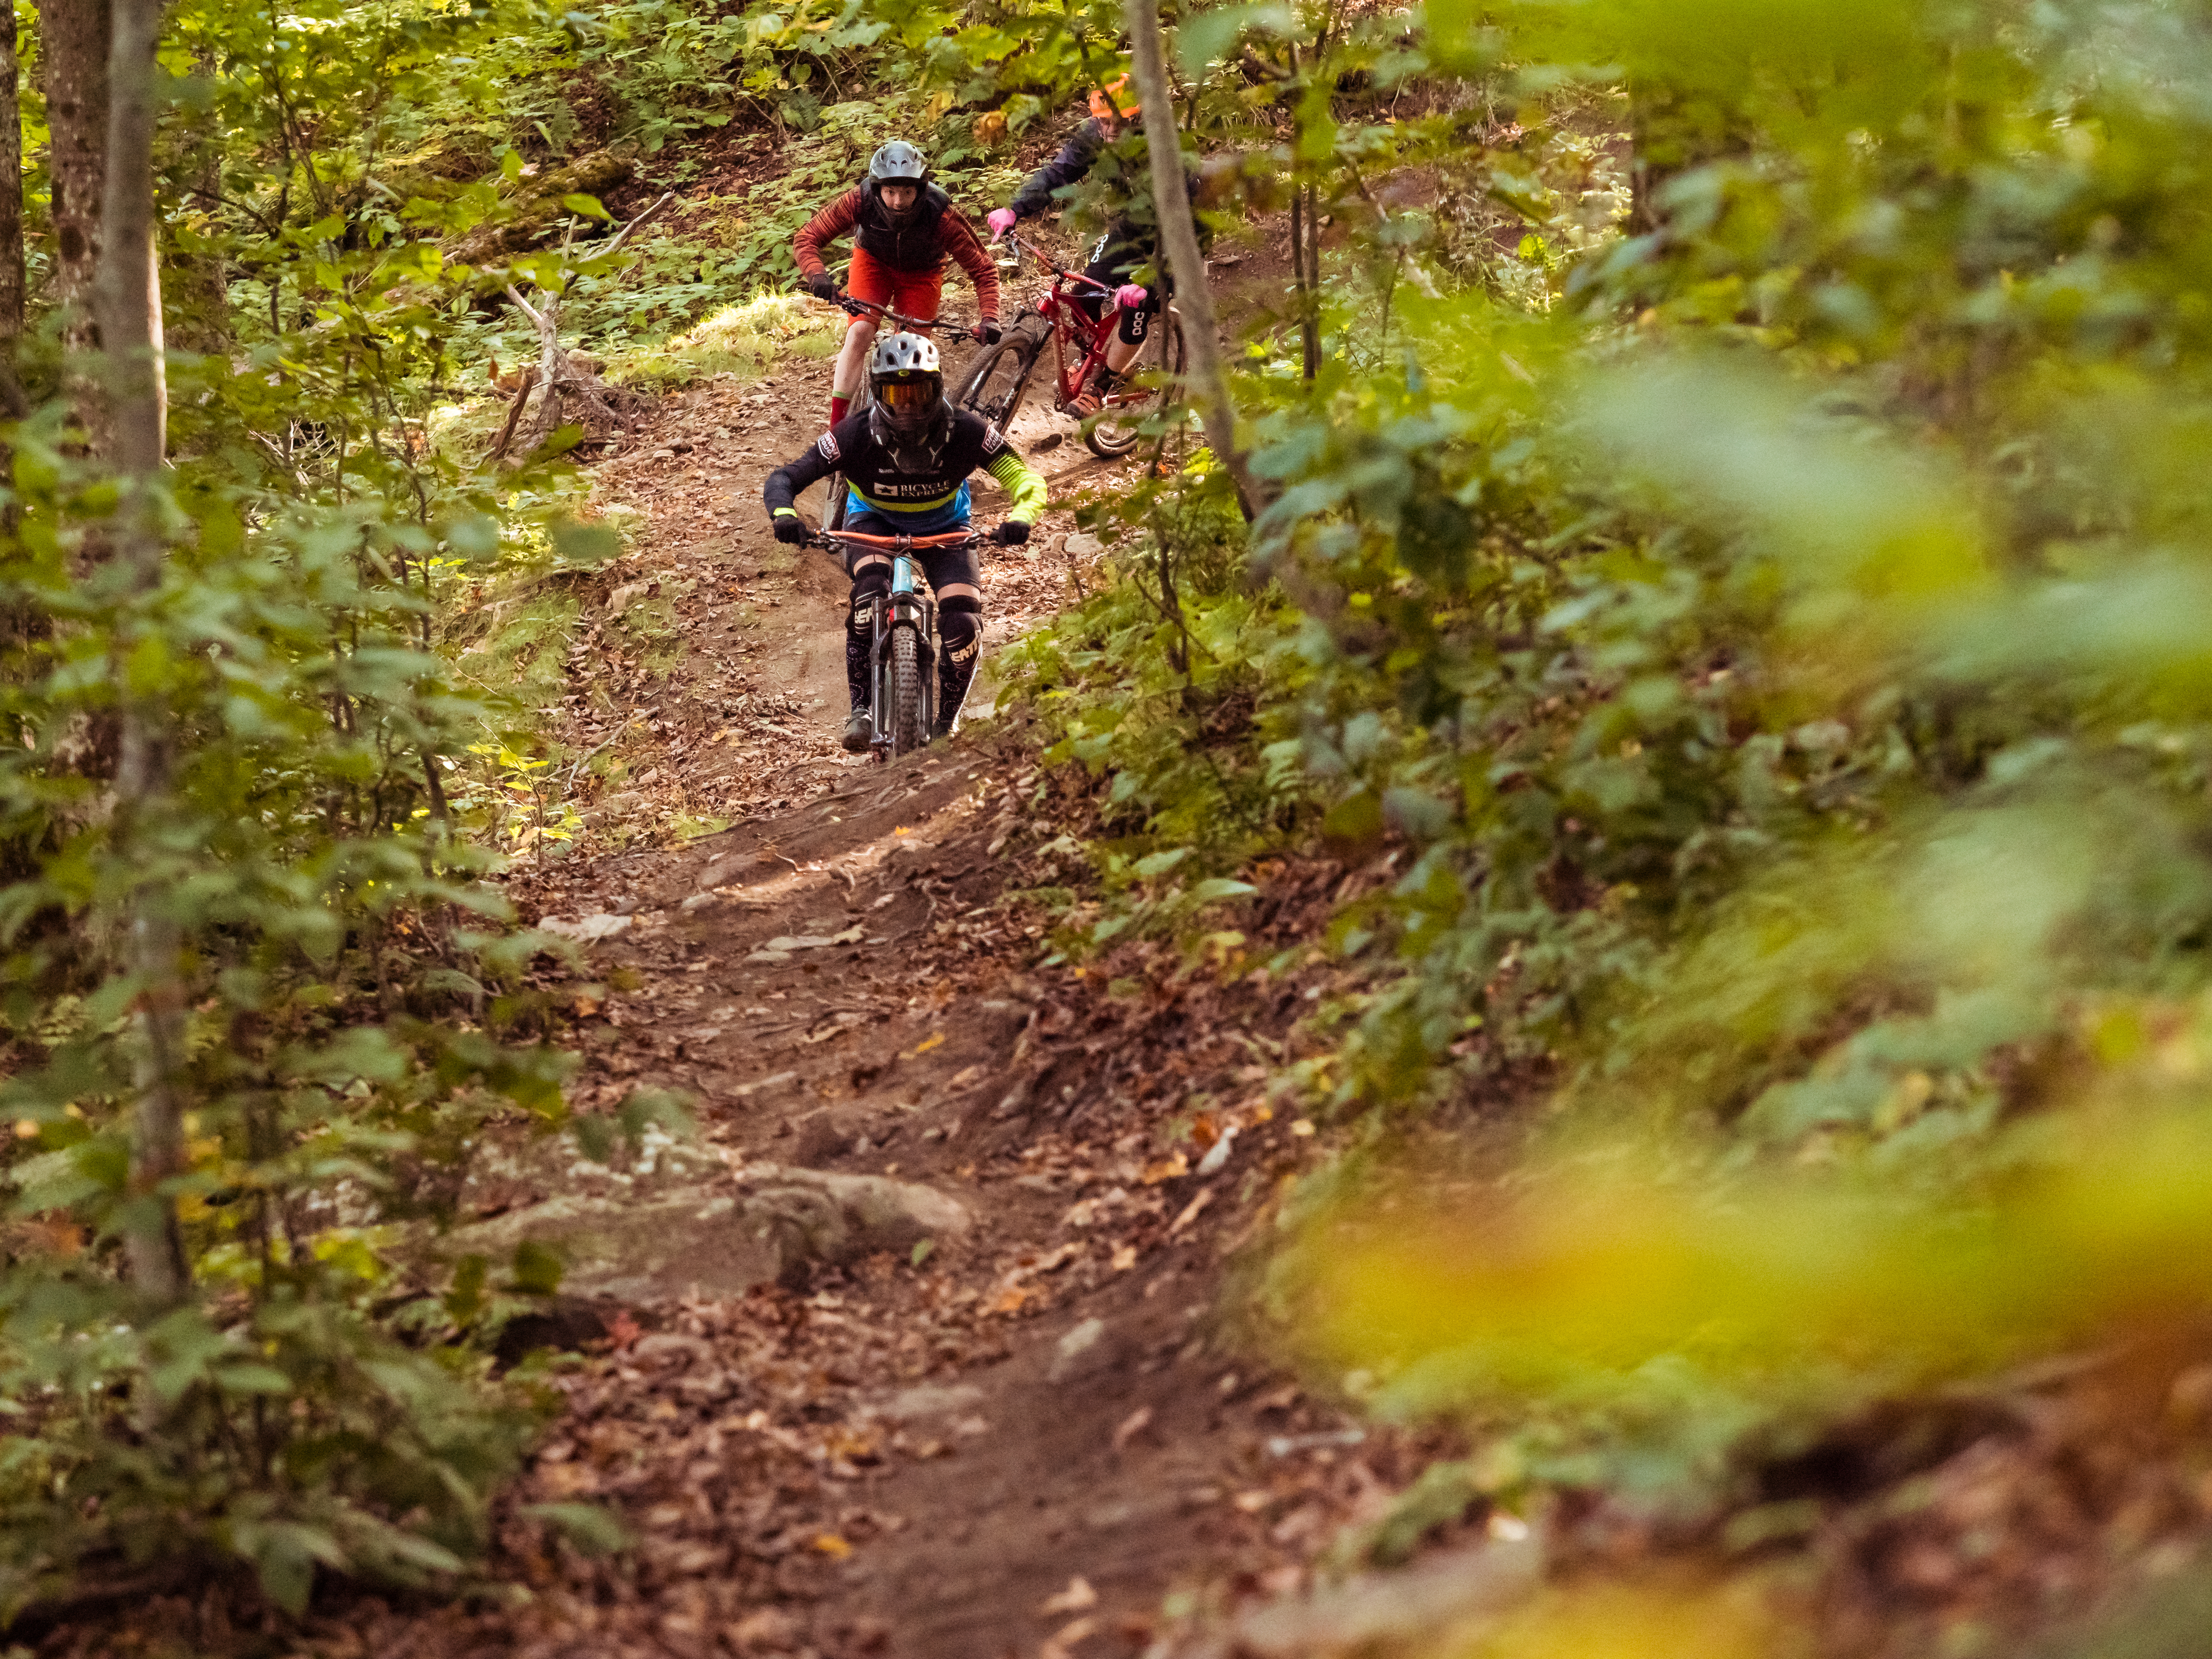 Come for a Job, Stay for the Trails. Using Mountain Biking to Lure Great Employees - Singletracks Mountain Bike News